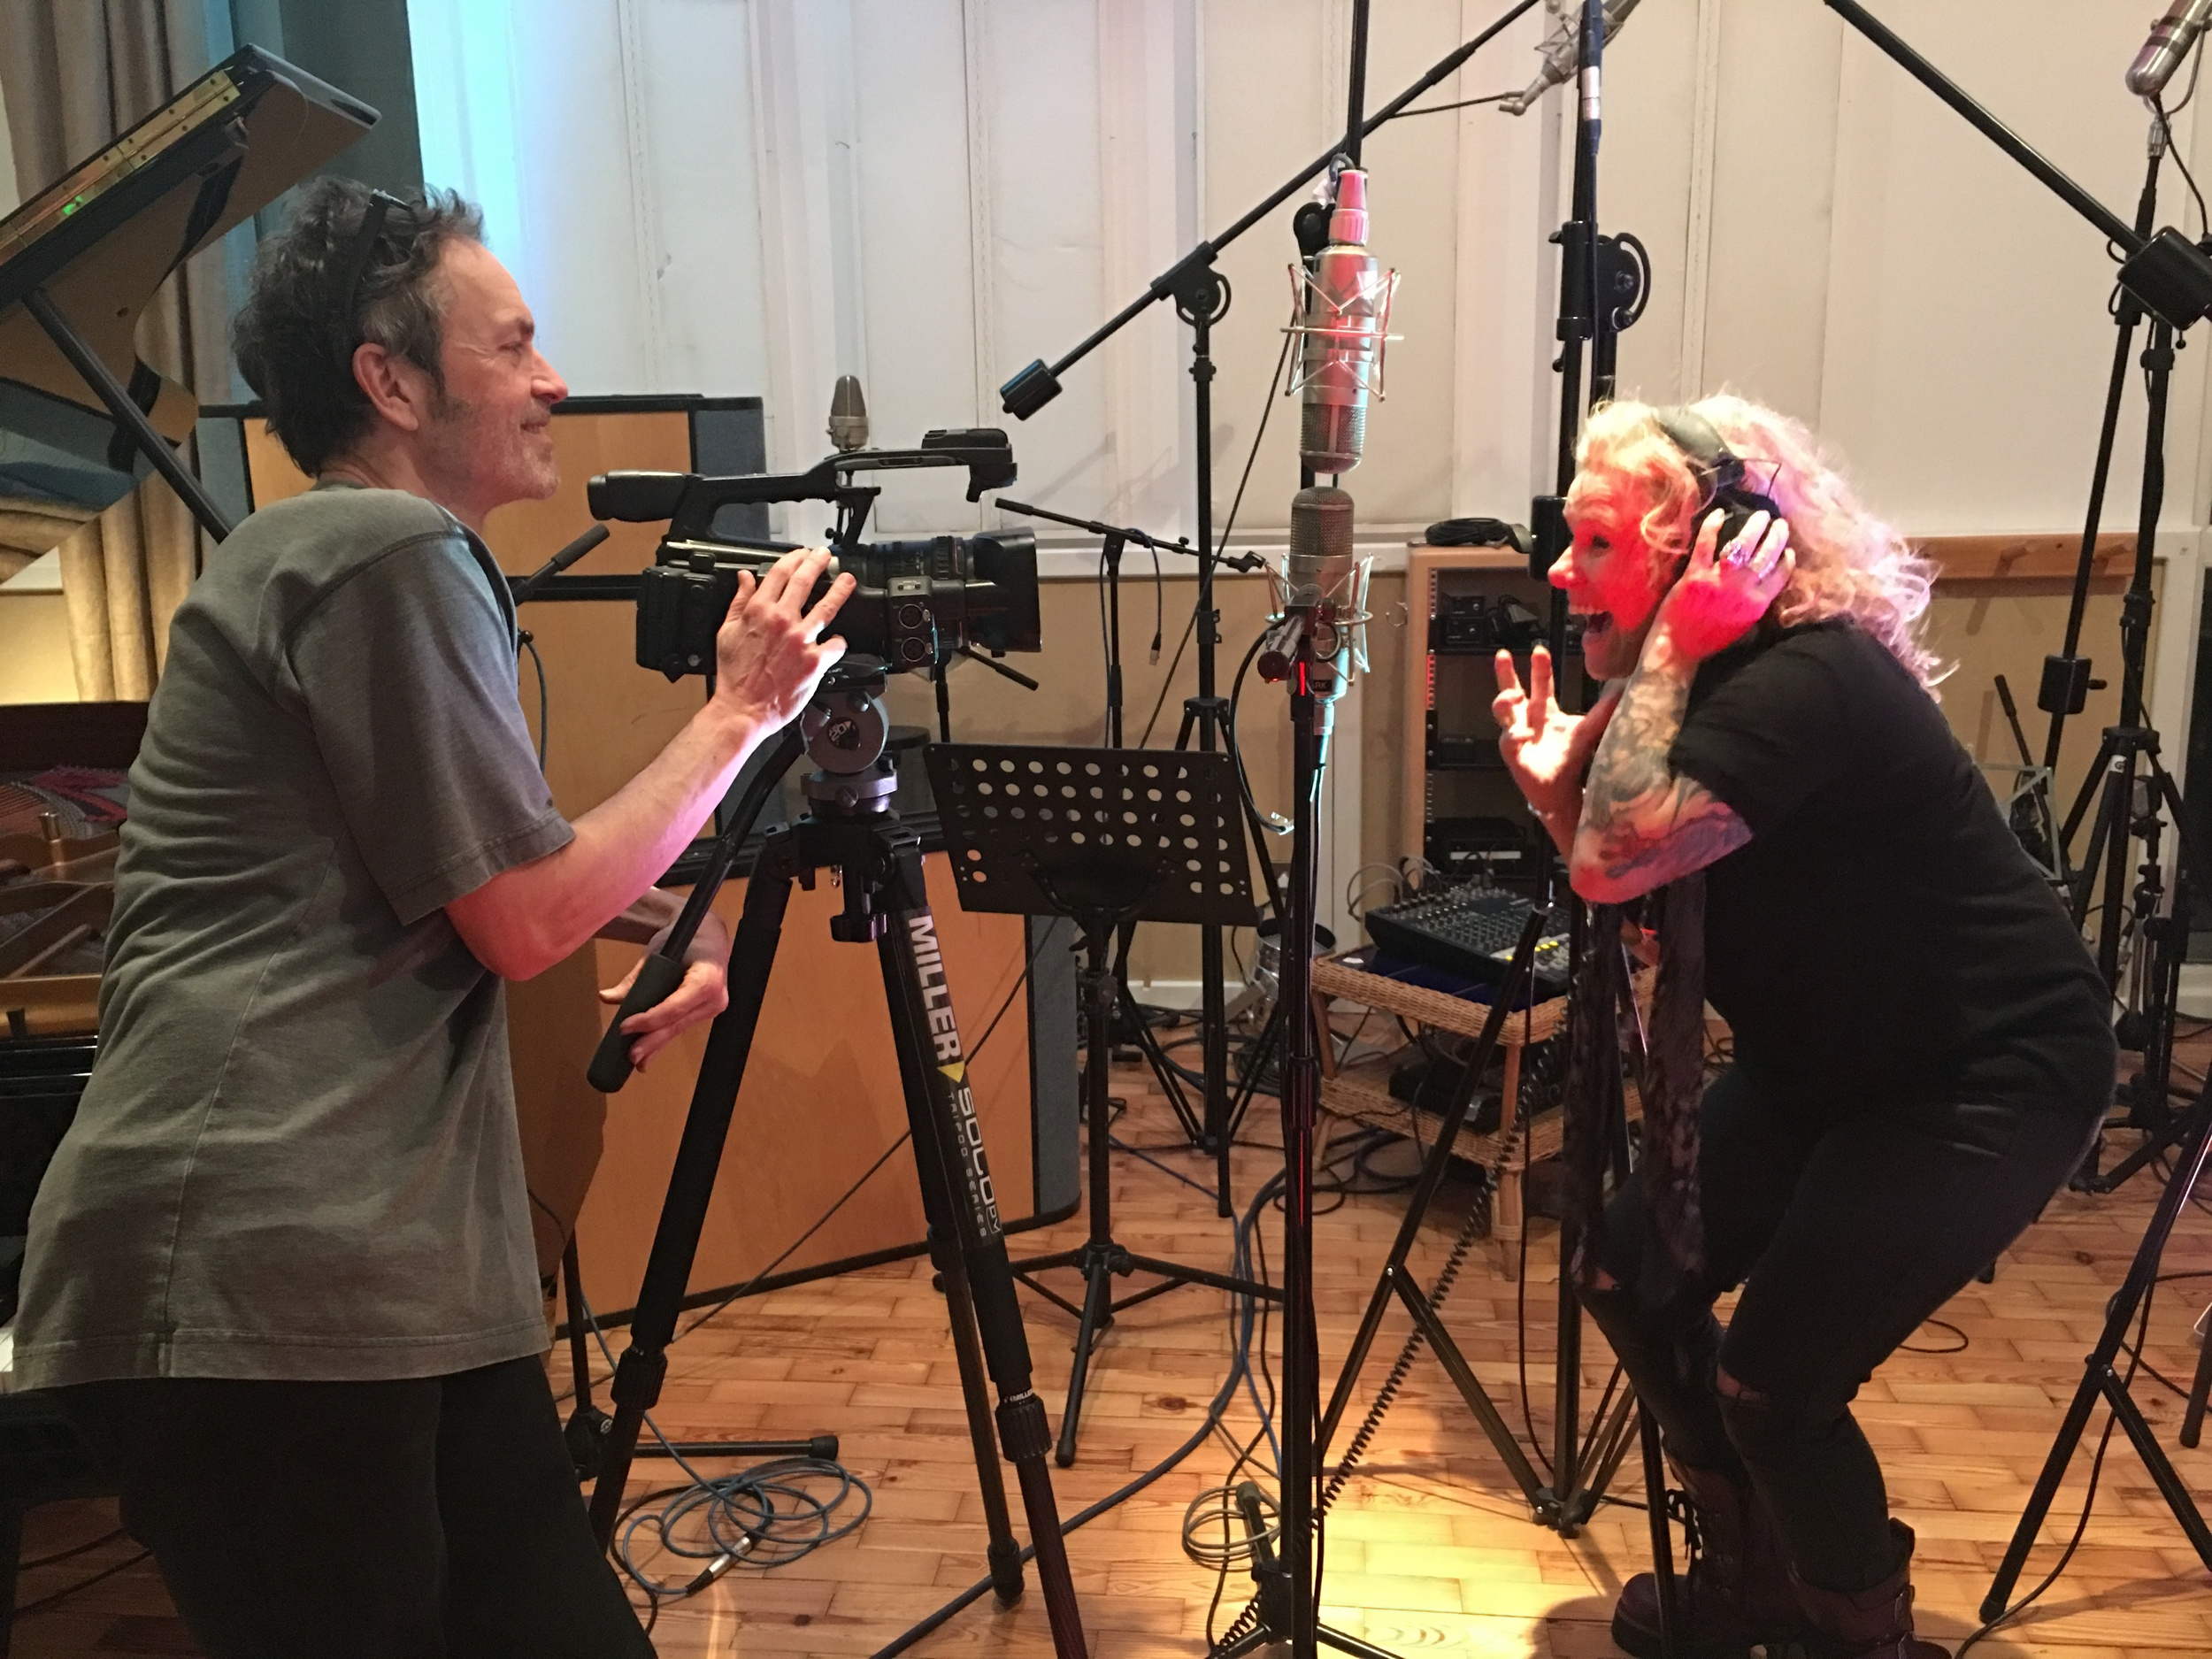 Mark Craig (he's been filming the sessions) and Nikki